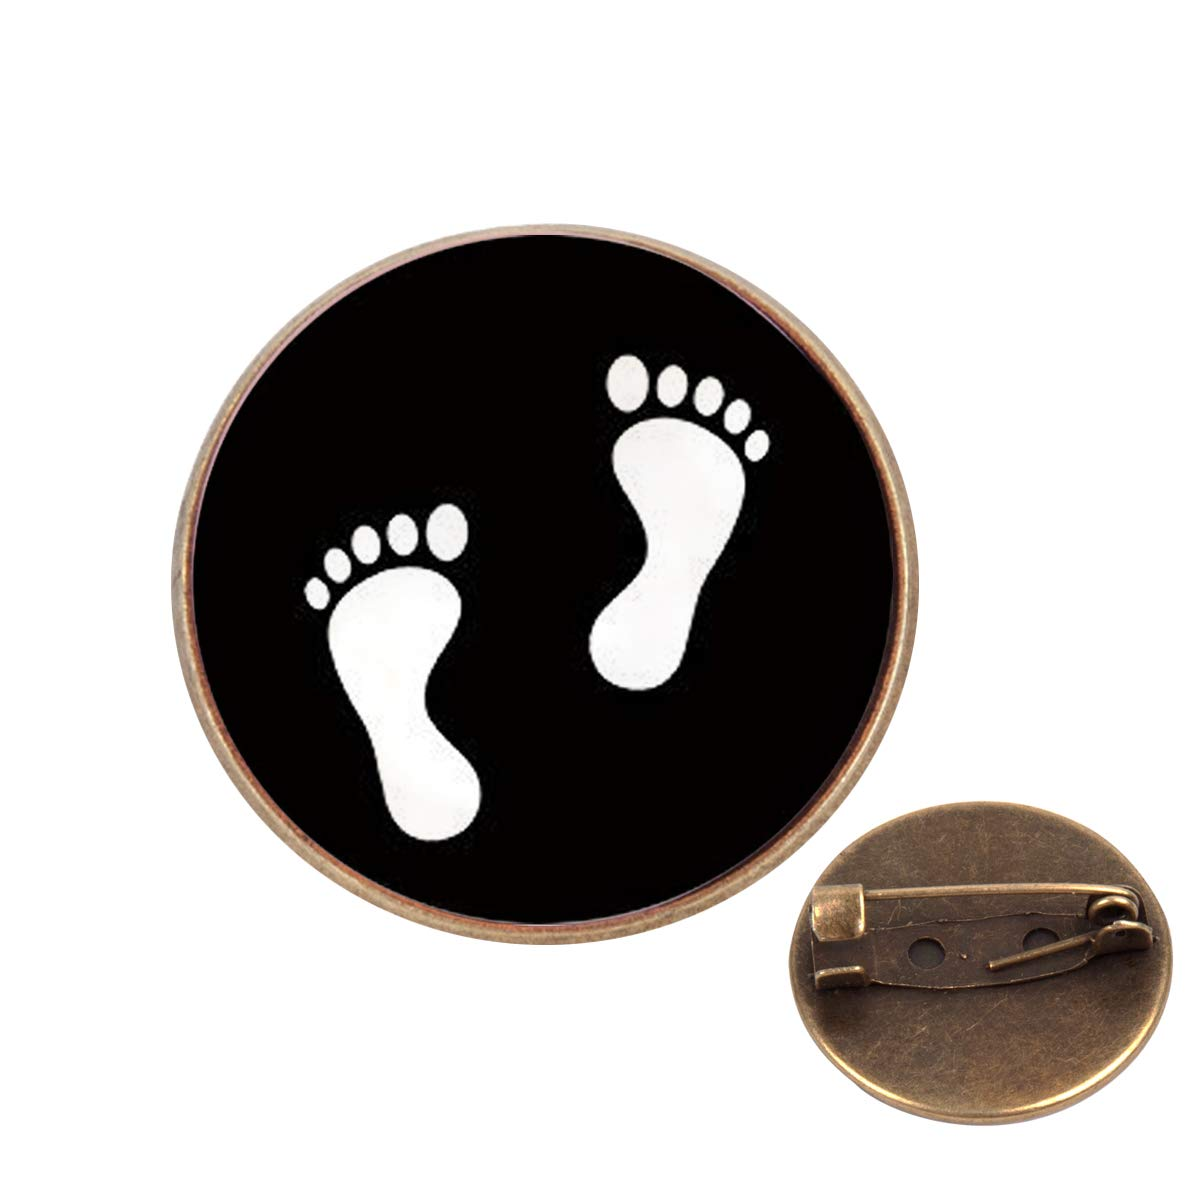 Pinback Buttons Badges Pins Lovely Footprints Print Lapel Pin Brooch Clip Trendy Accessory Jacket T-Shirt Bag Hat Shoe